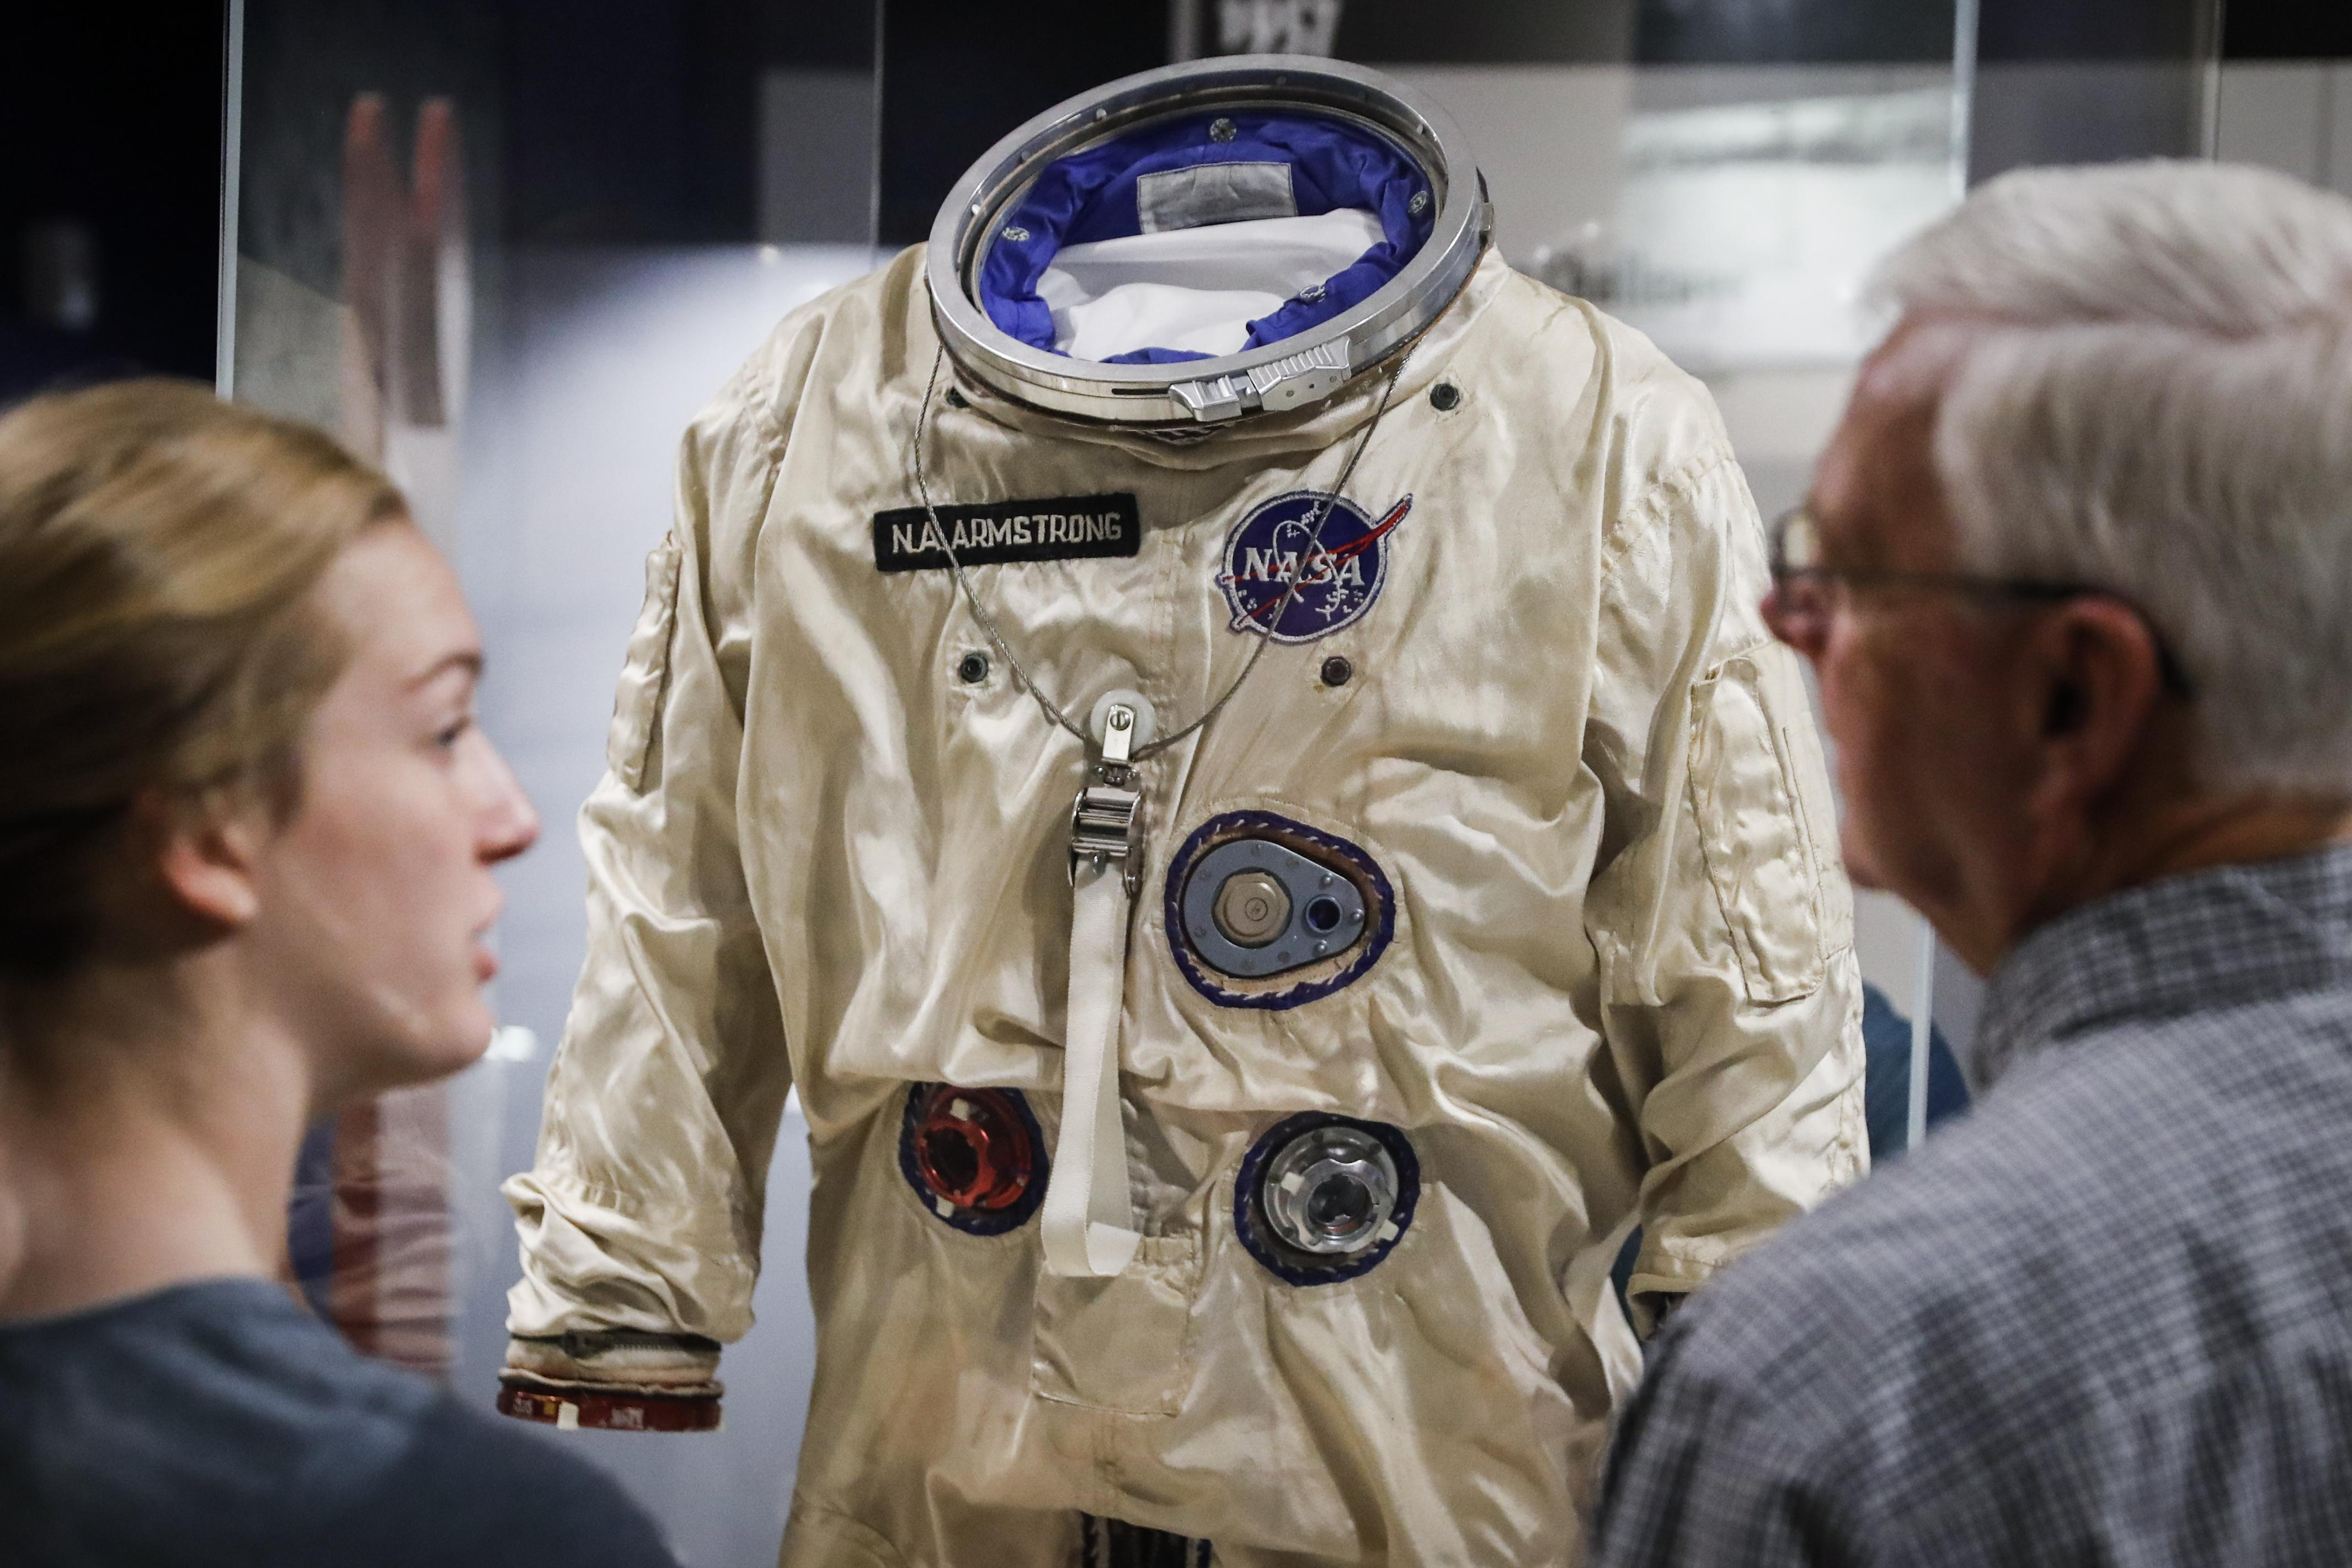 dfa72165 New statues, education center honor Neil Armstrong in Ohio - Washington  Times